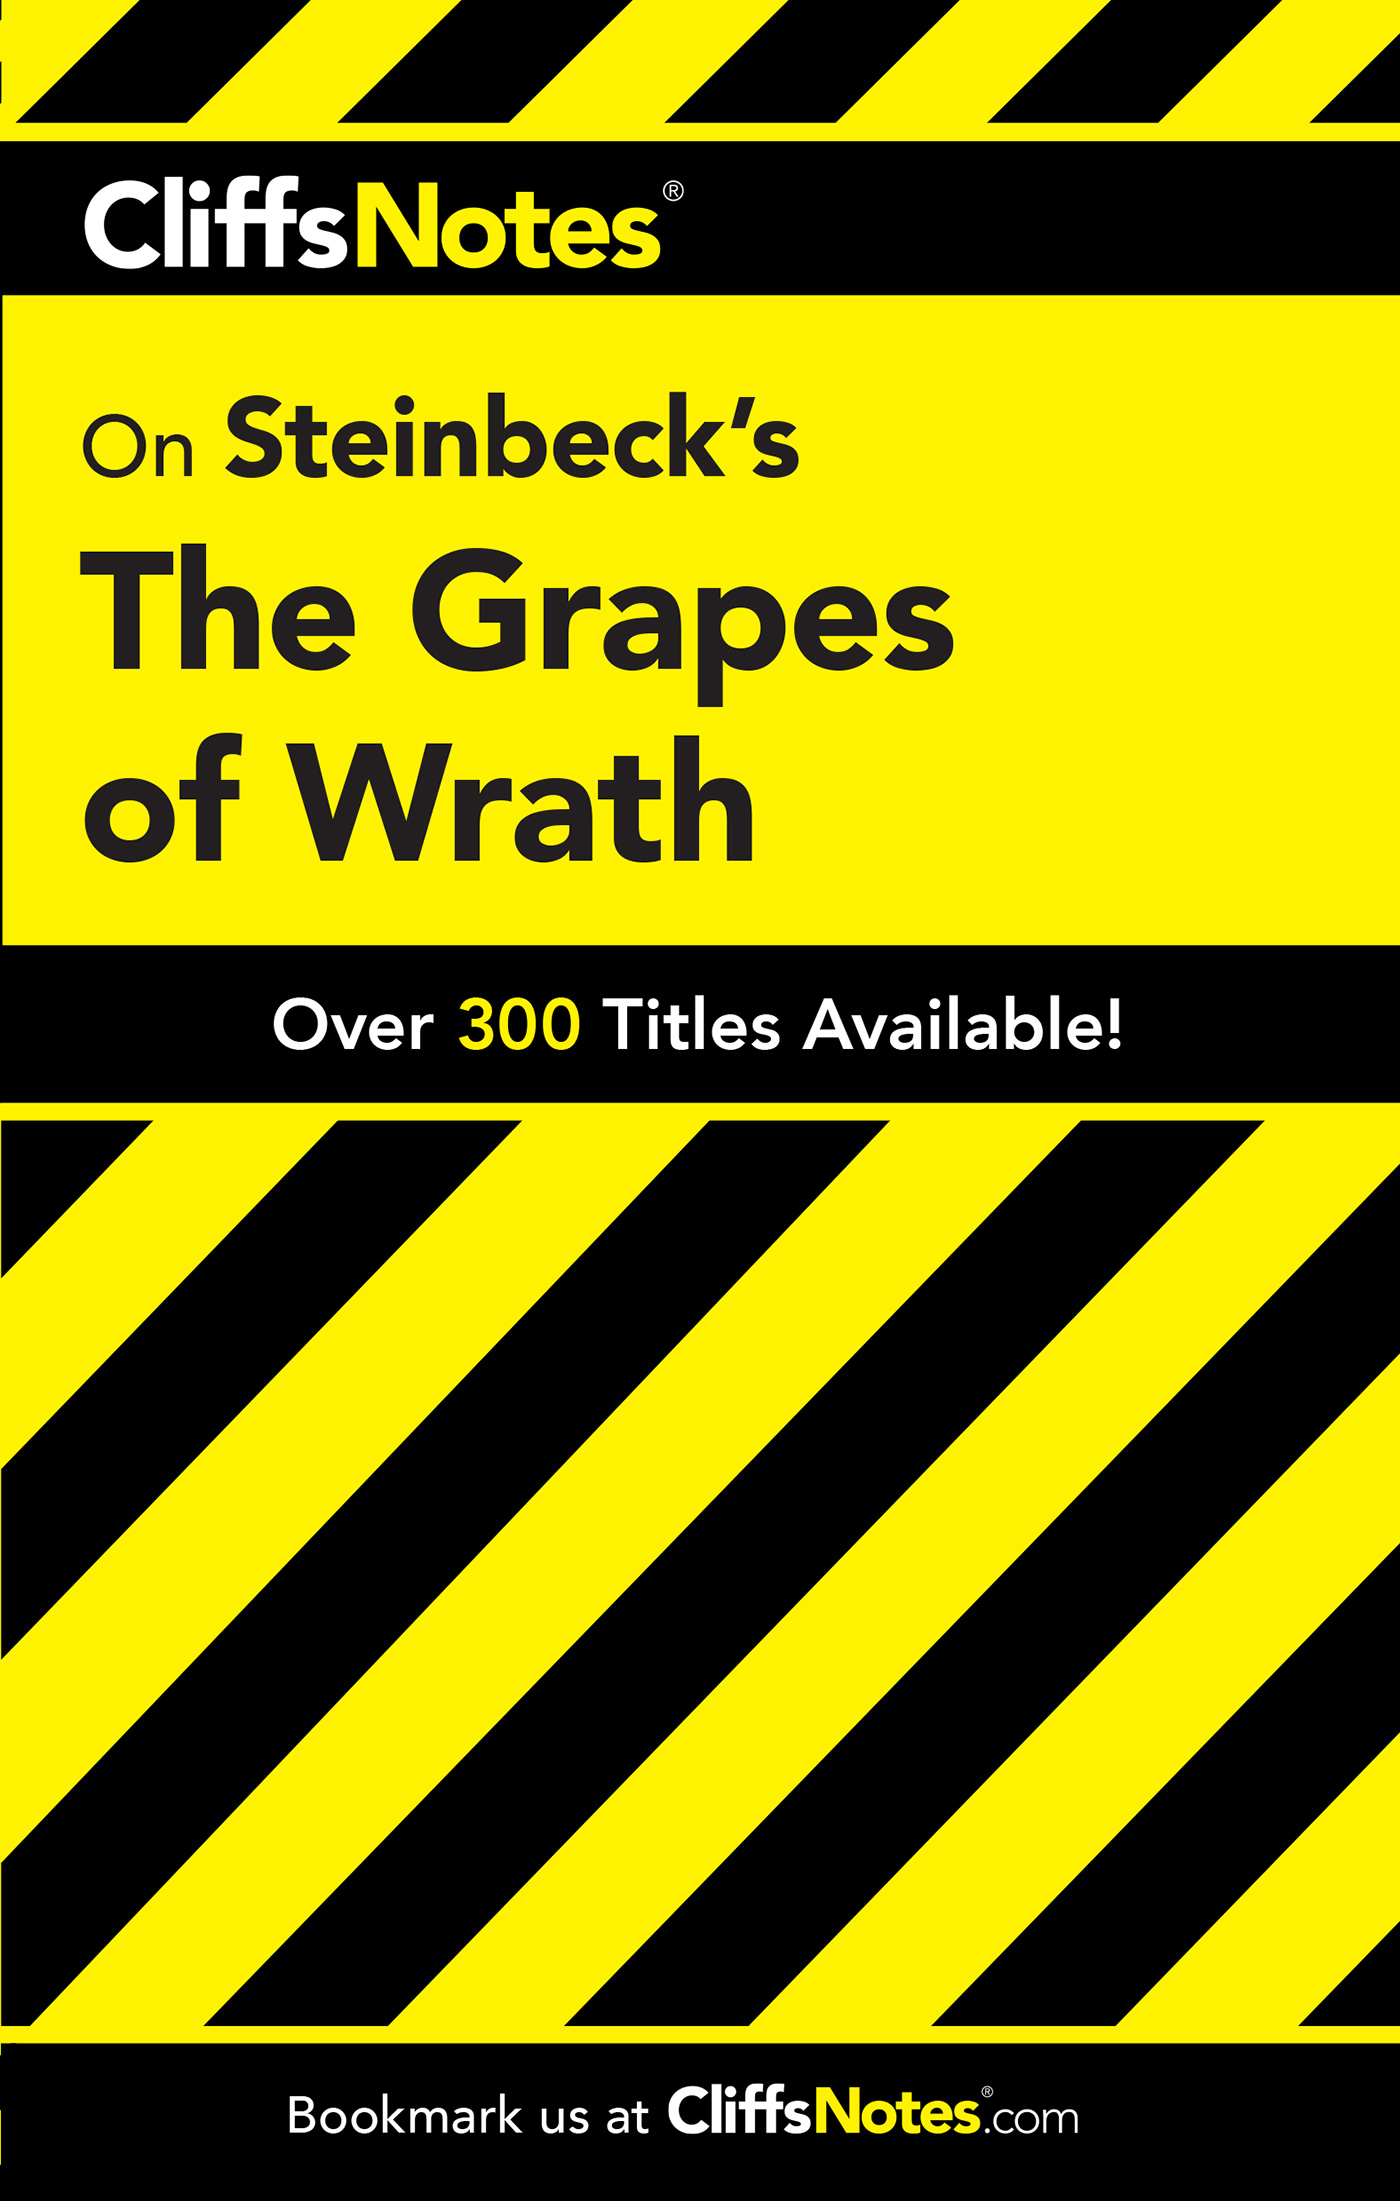 CliffsNotes on Steinbeck's The Grapes of Wrath-9780764585968